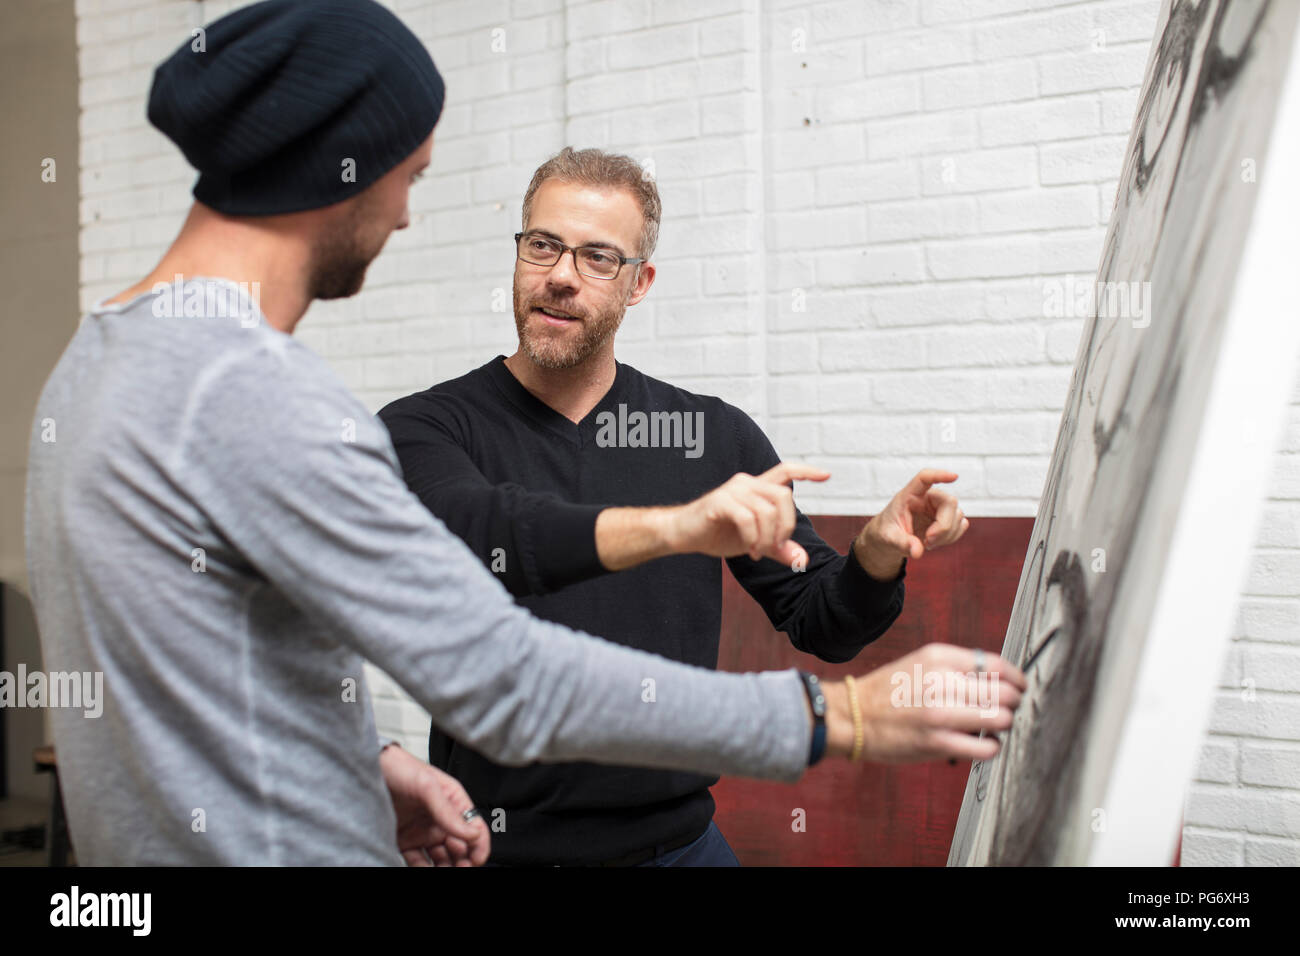 Artist discussing drawing with man in studio - Stock Image